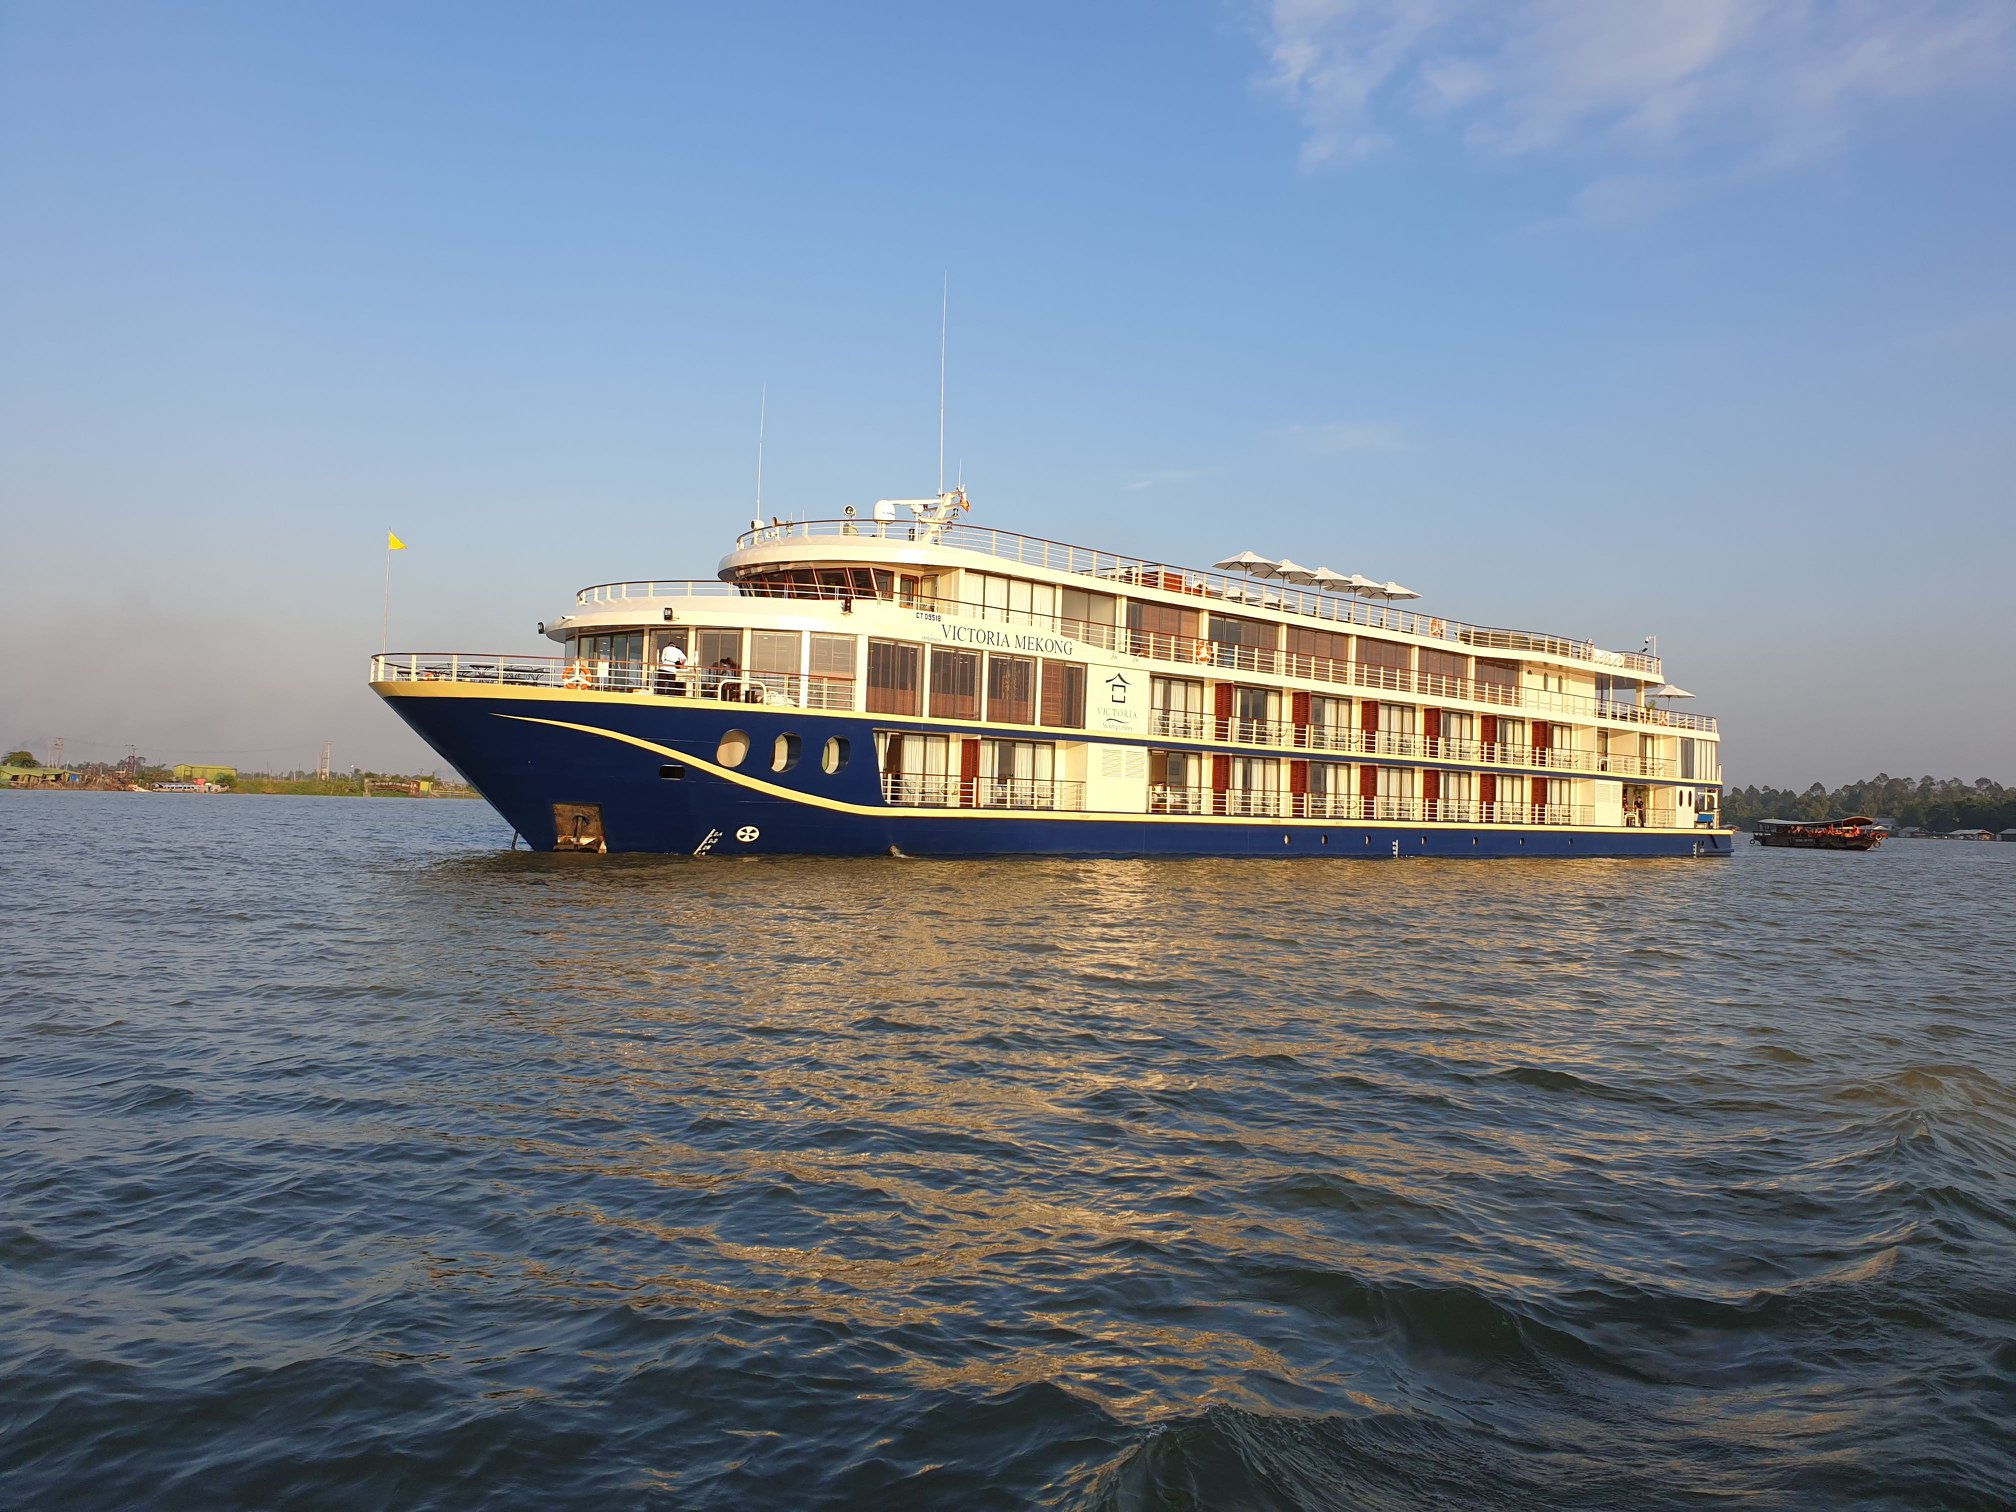 Victoria Mekong Sets Sail Today!